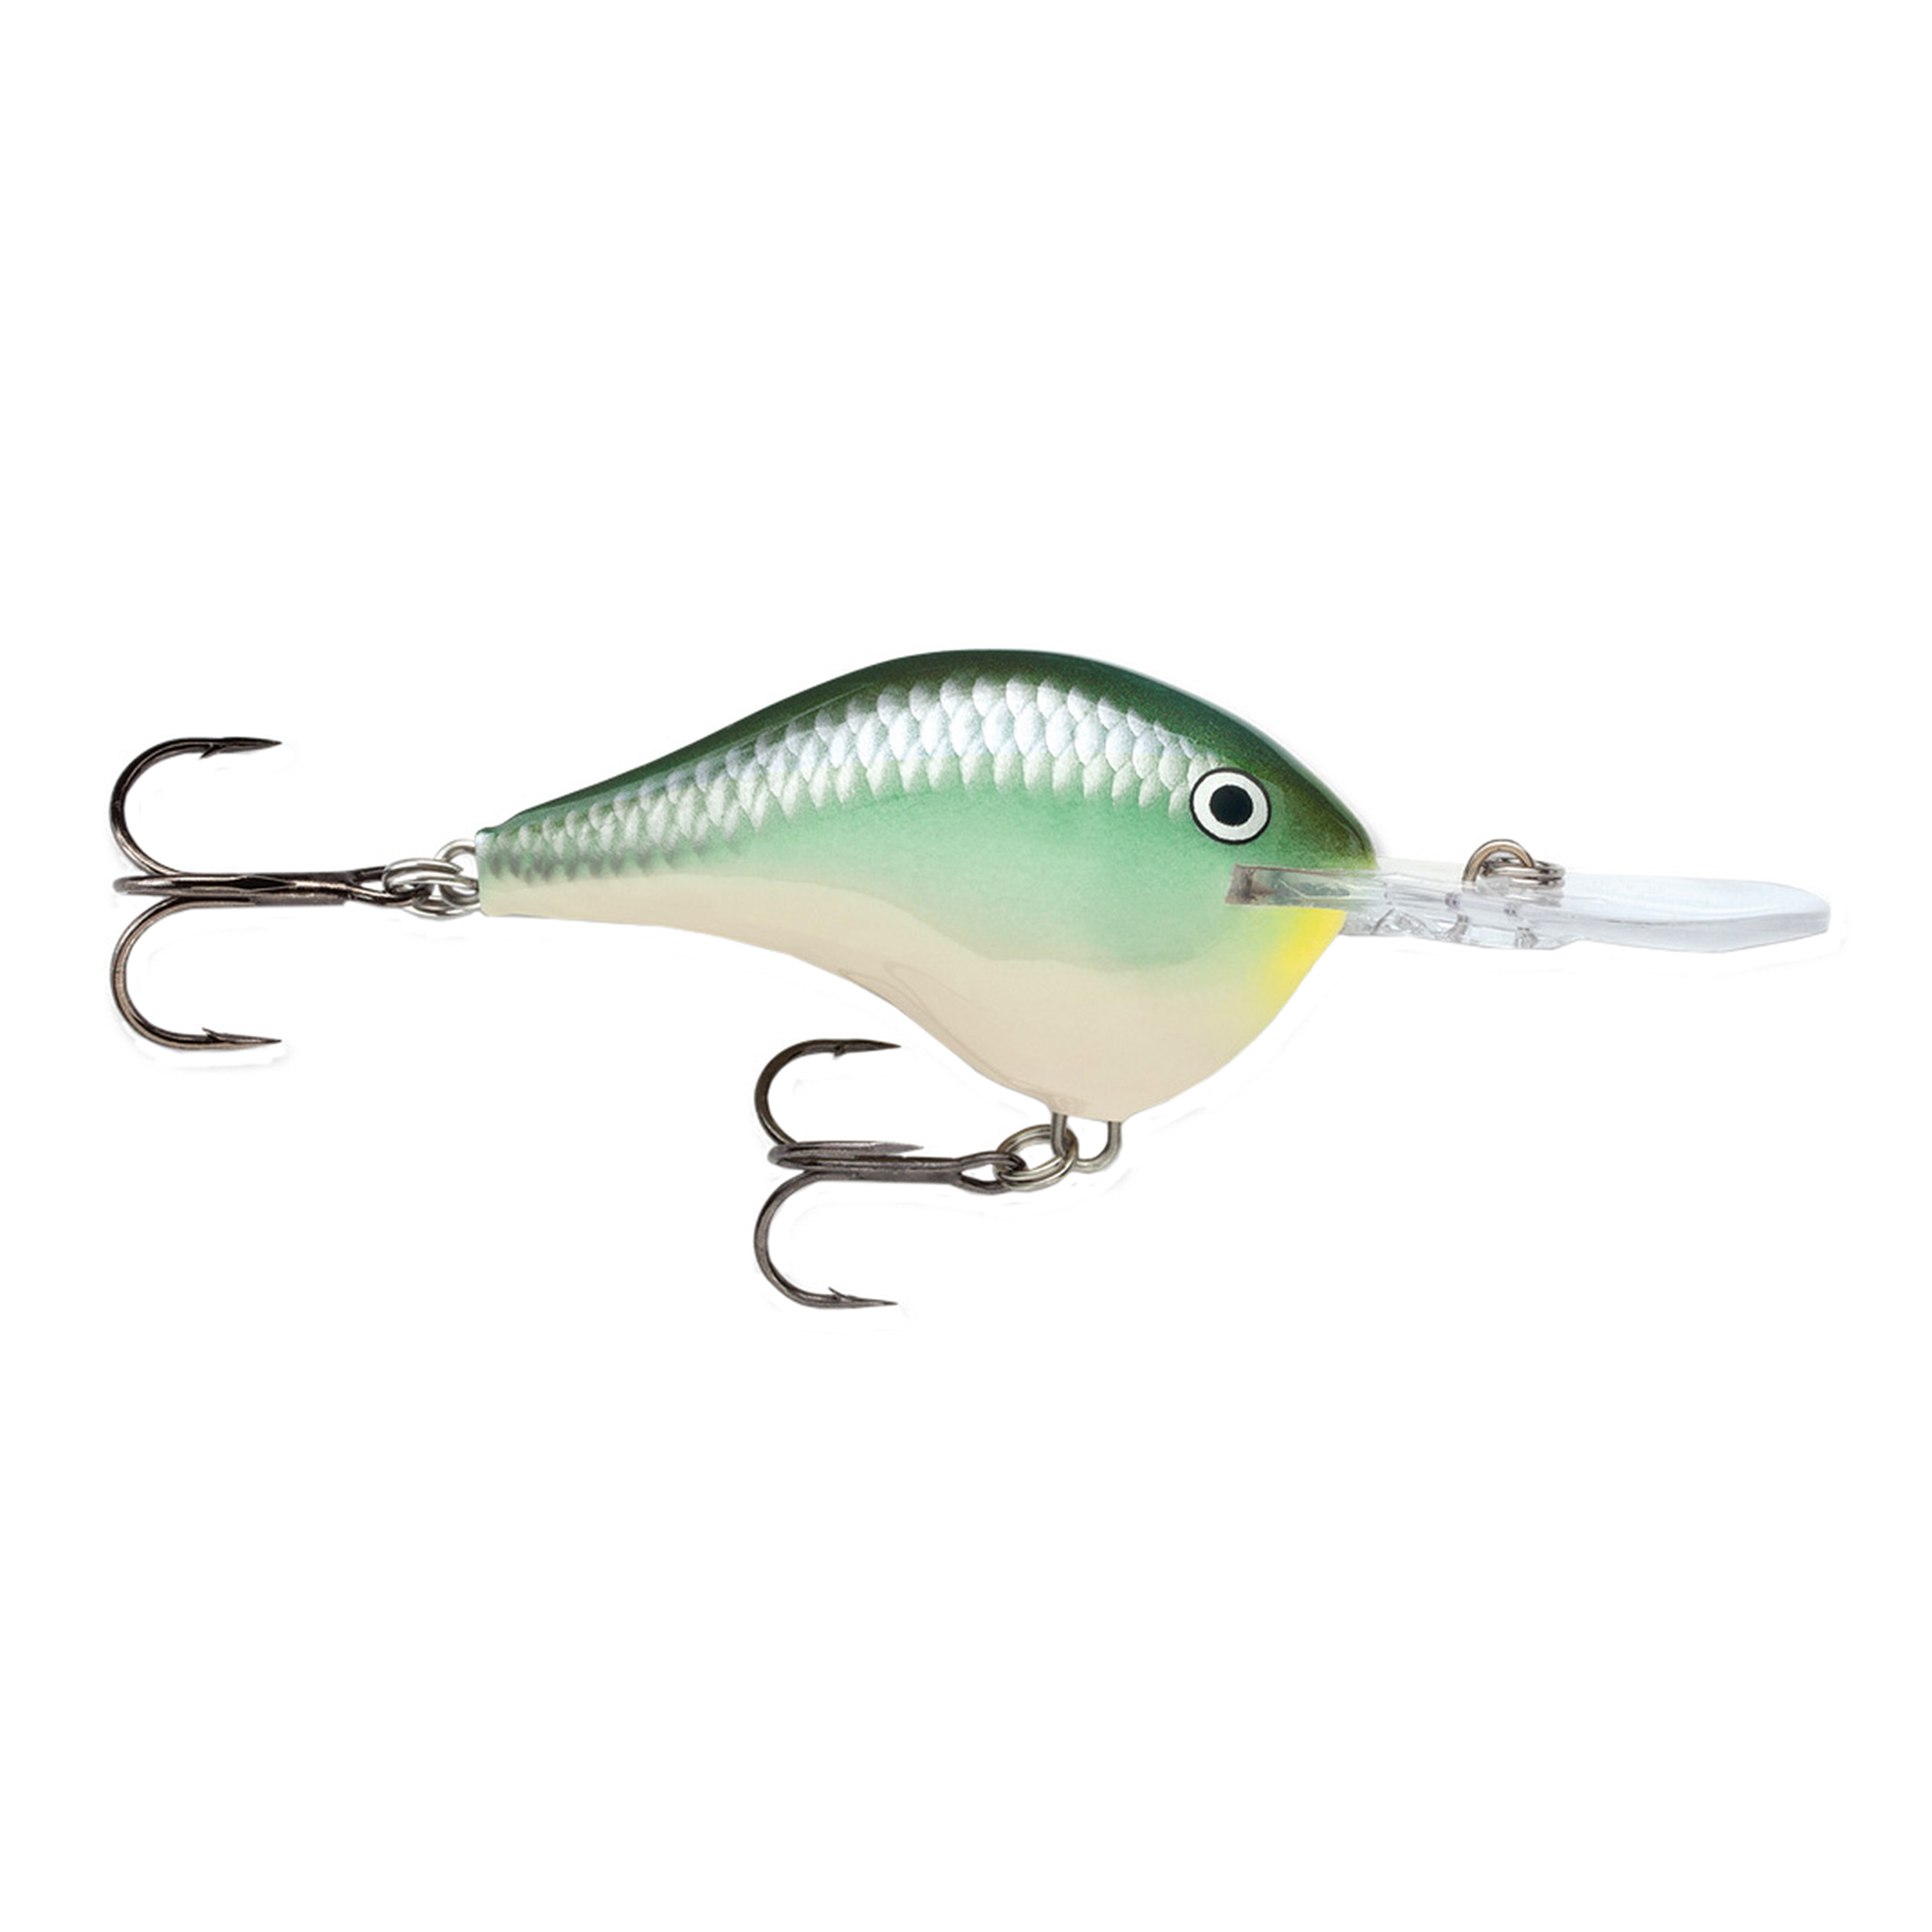 "Rapala Dives-To Series Custom Ink Lure Size 16, 2 3 4"" Length 16' Depth, 2 No 3 Treble Hooks, Blue Back Herring, Per 1 by Rapala"